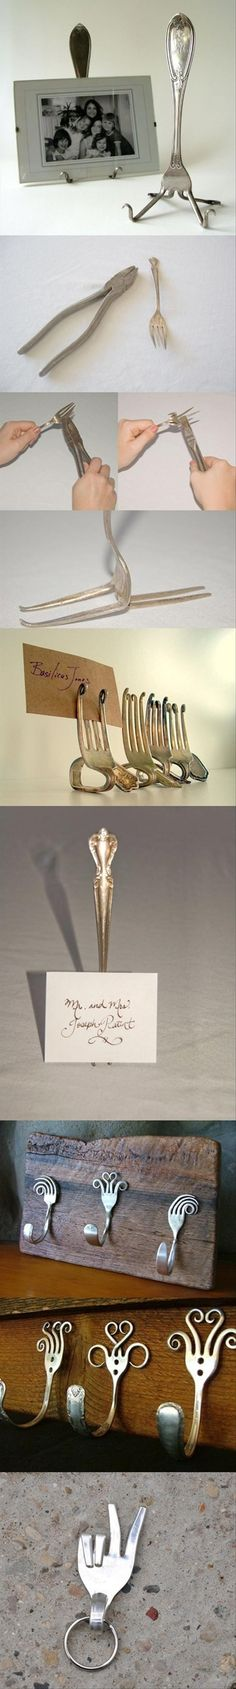 Stick a fork in me... Fun Do It Yourself Craft Ideas – 45 Pics